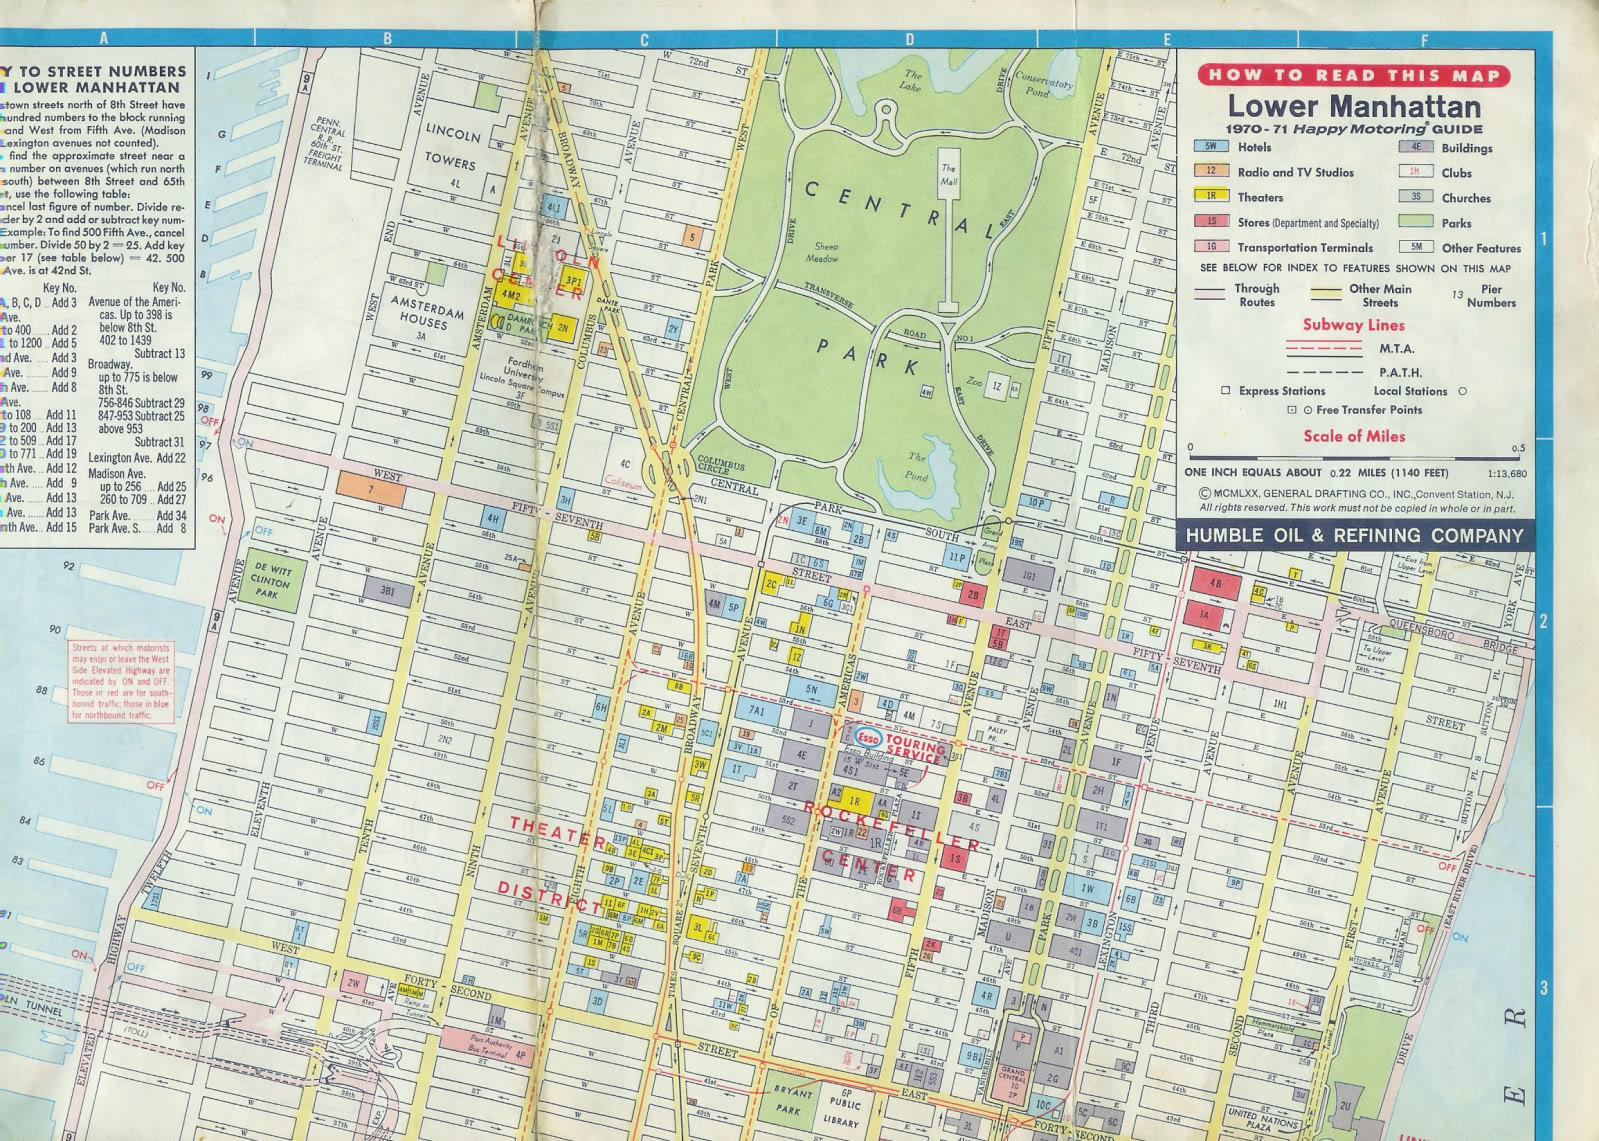 map of midtown manhattan printable with Mappe on Soho tribeca map together with Things To Do In Times Square further Tourist Manhattan Map 1964 together with Tourist Map Of Downtown Chicago further Mappe.